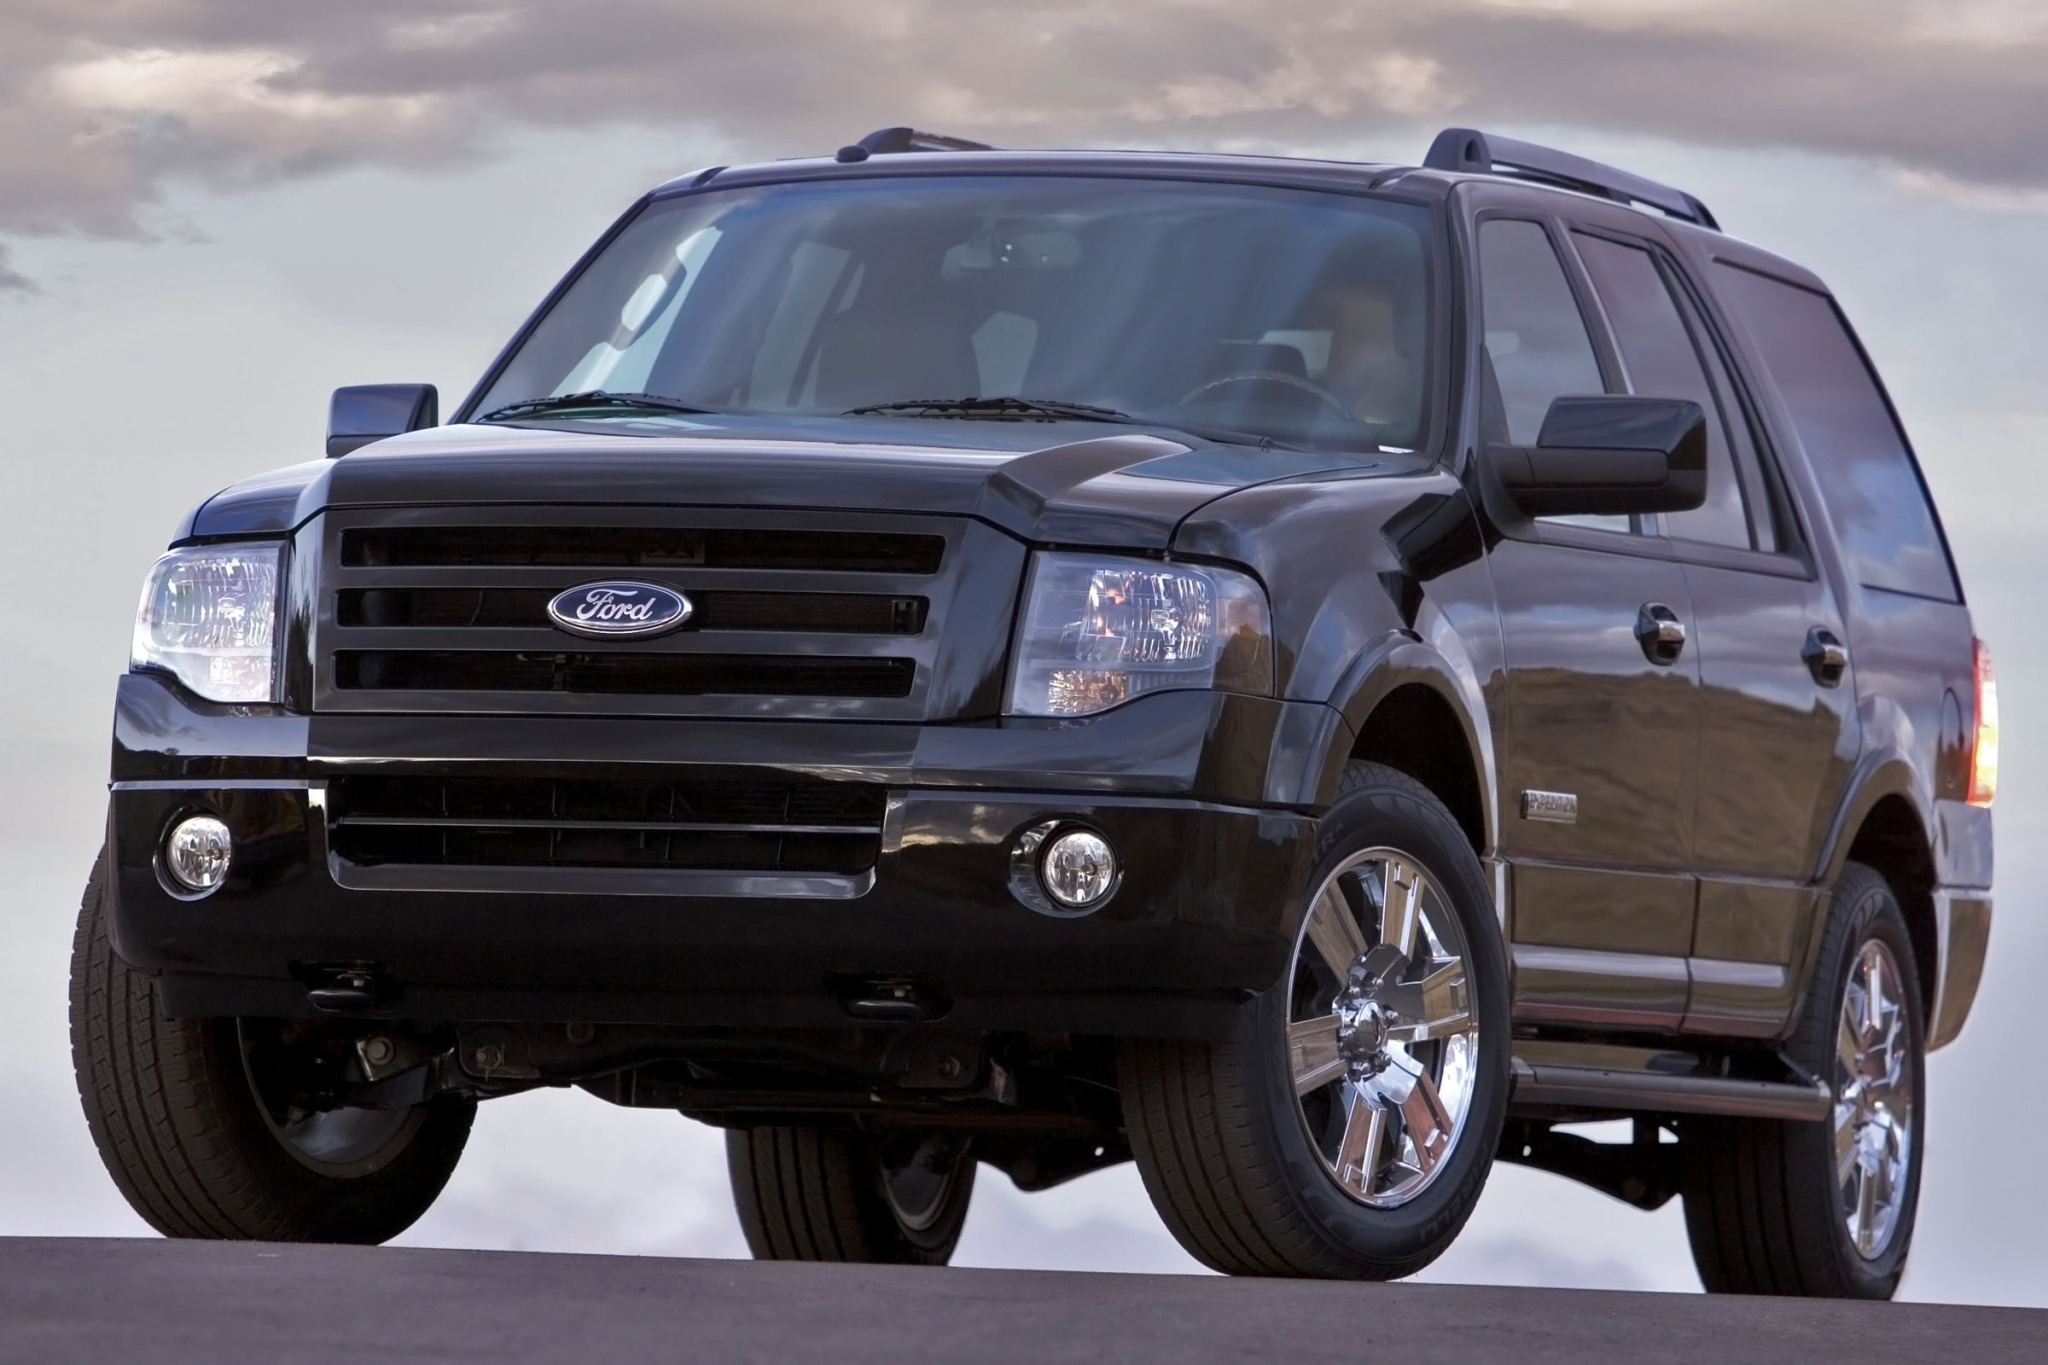 2013 Ford Expedition XLT  exterior #6